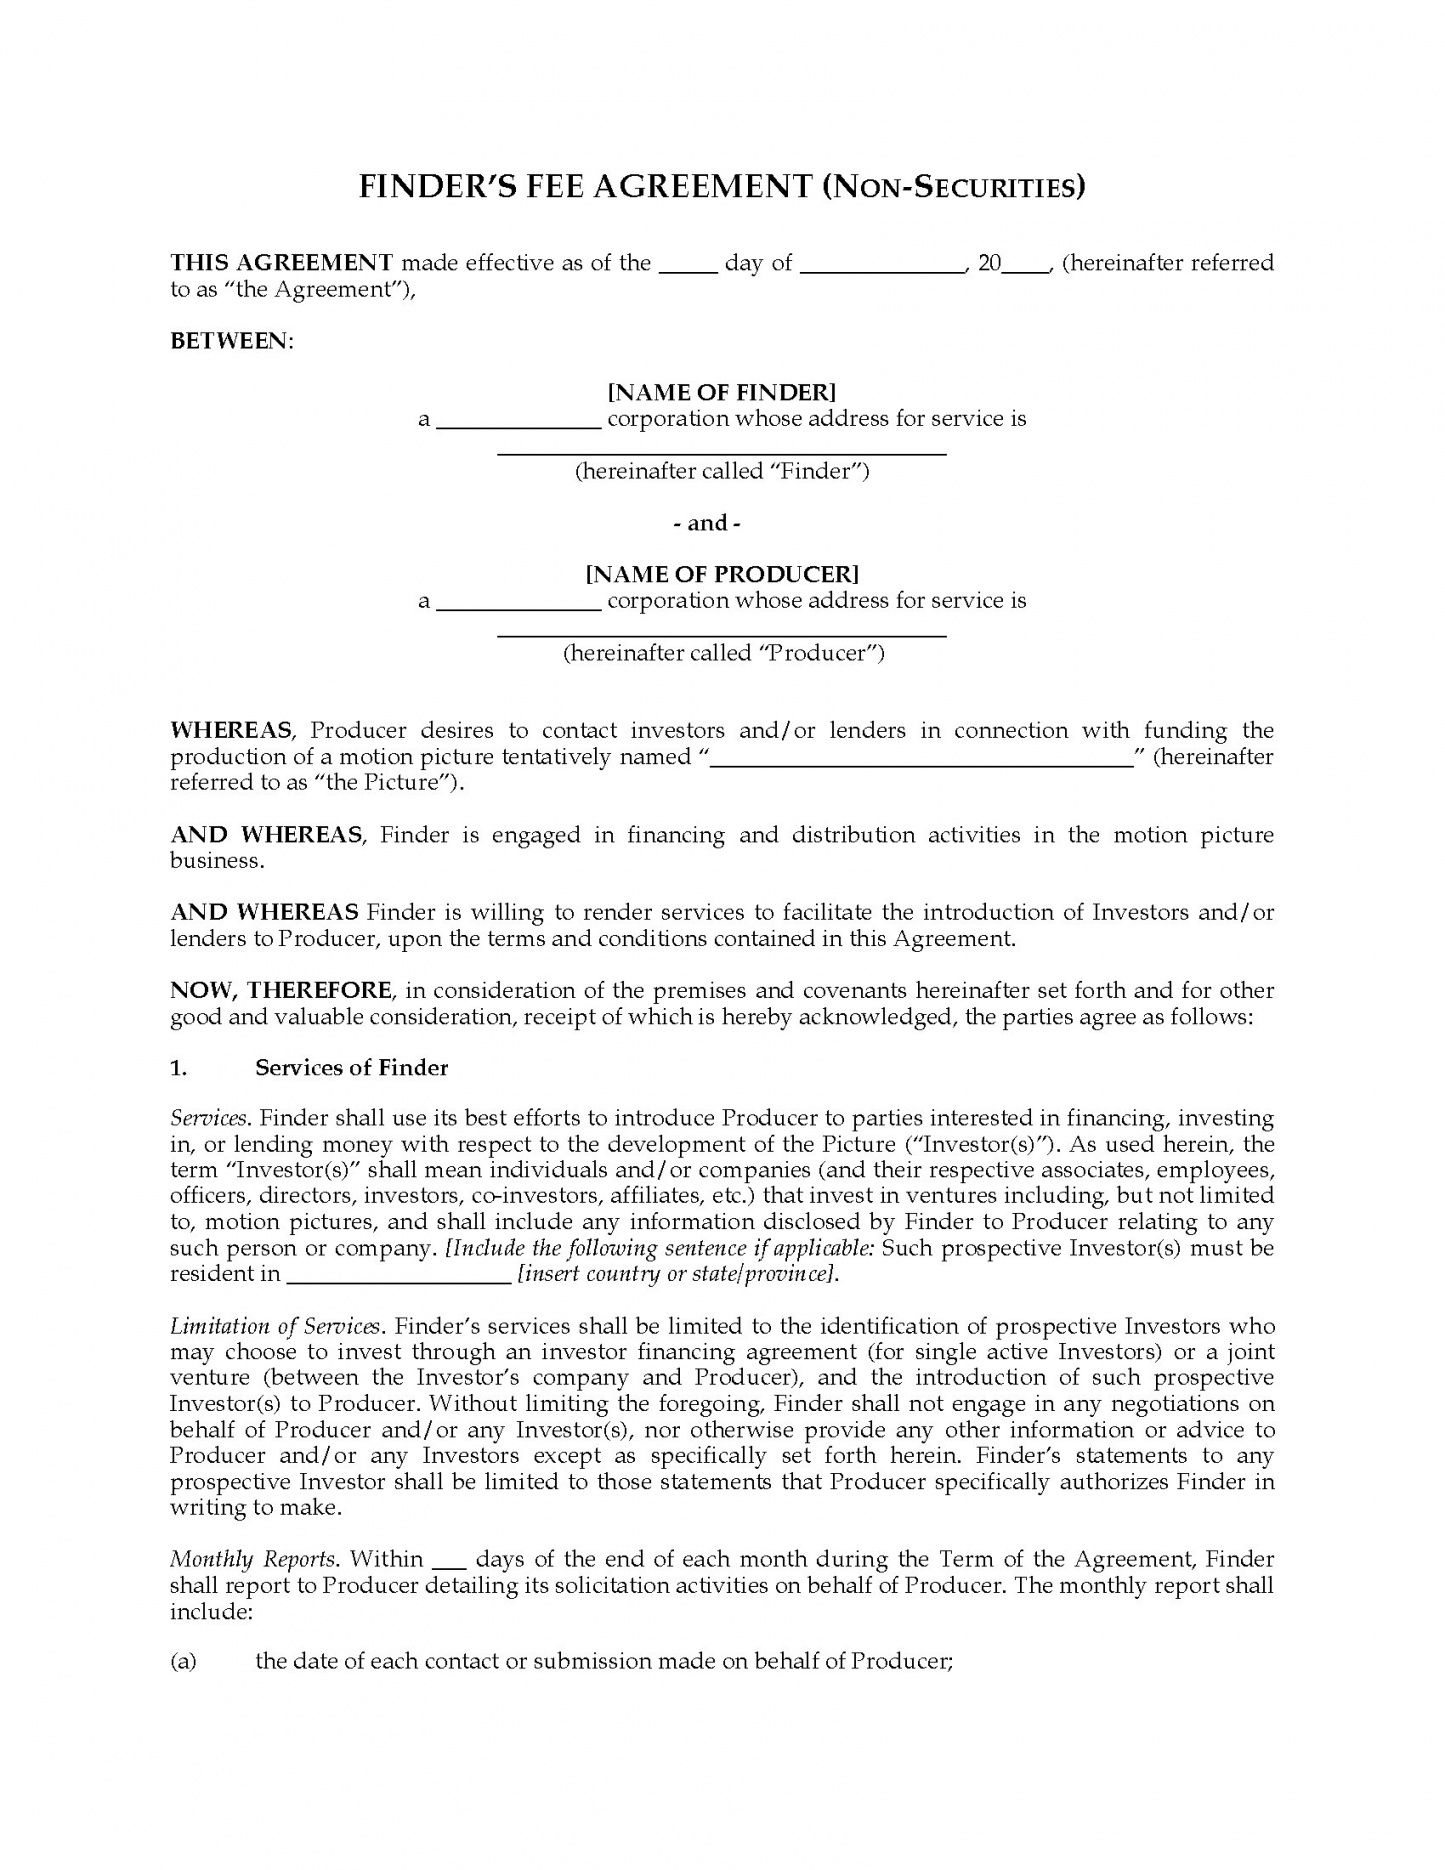 printable finder's fee agreement to obtain film financing finders agreement template sample